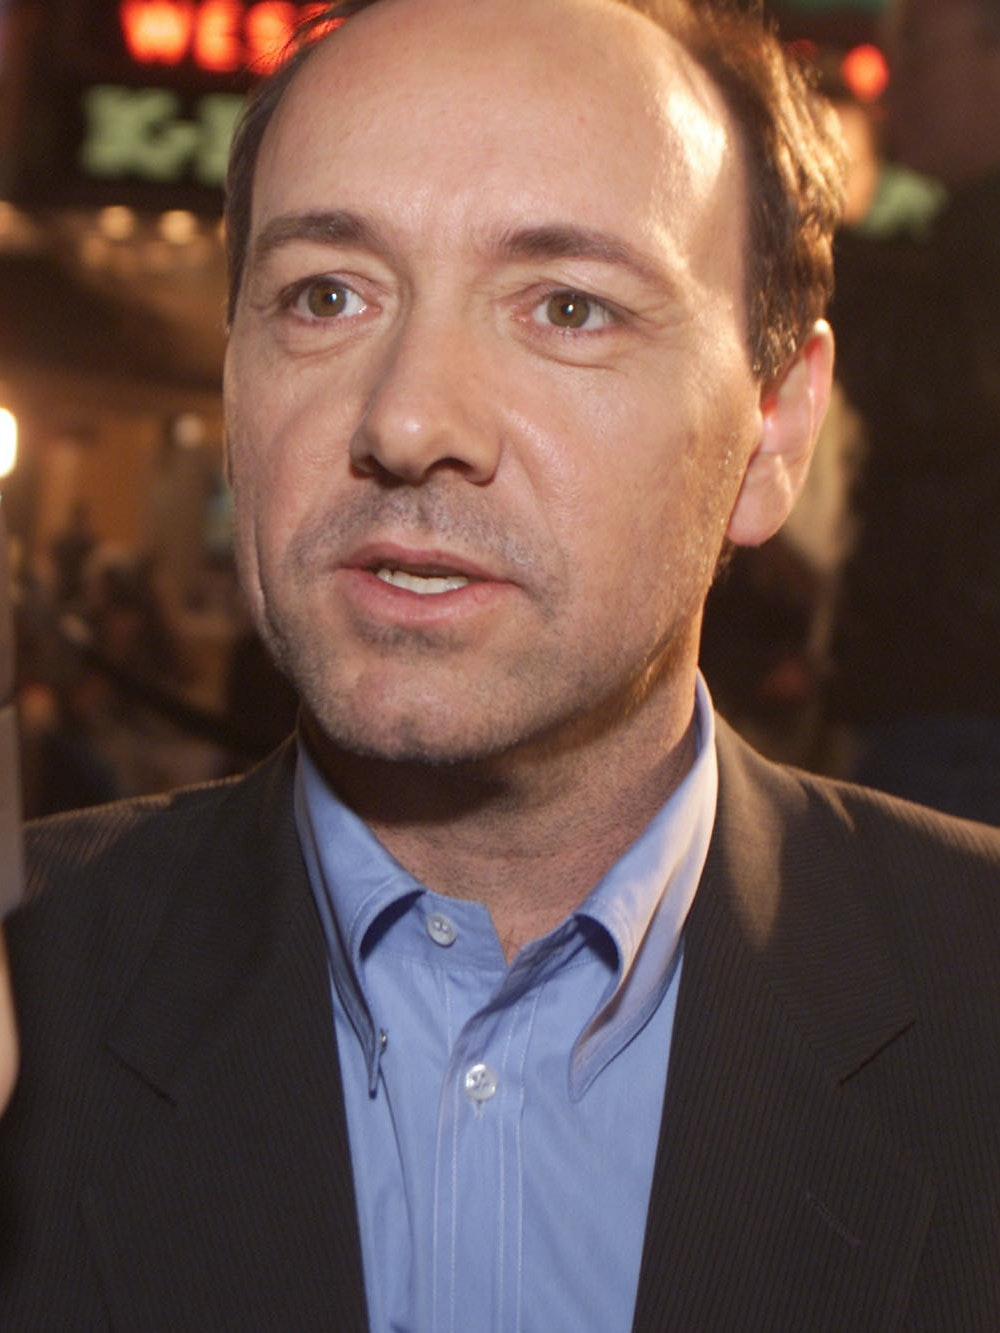 Kevin Spacey, The X-Files, K-Pax, House of Cards, Nine Lives